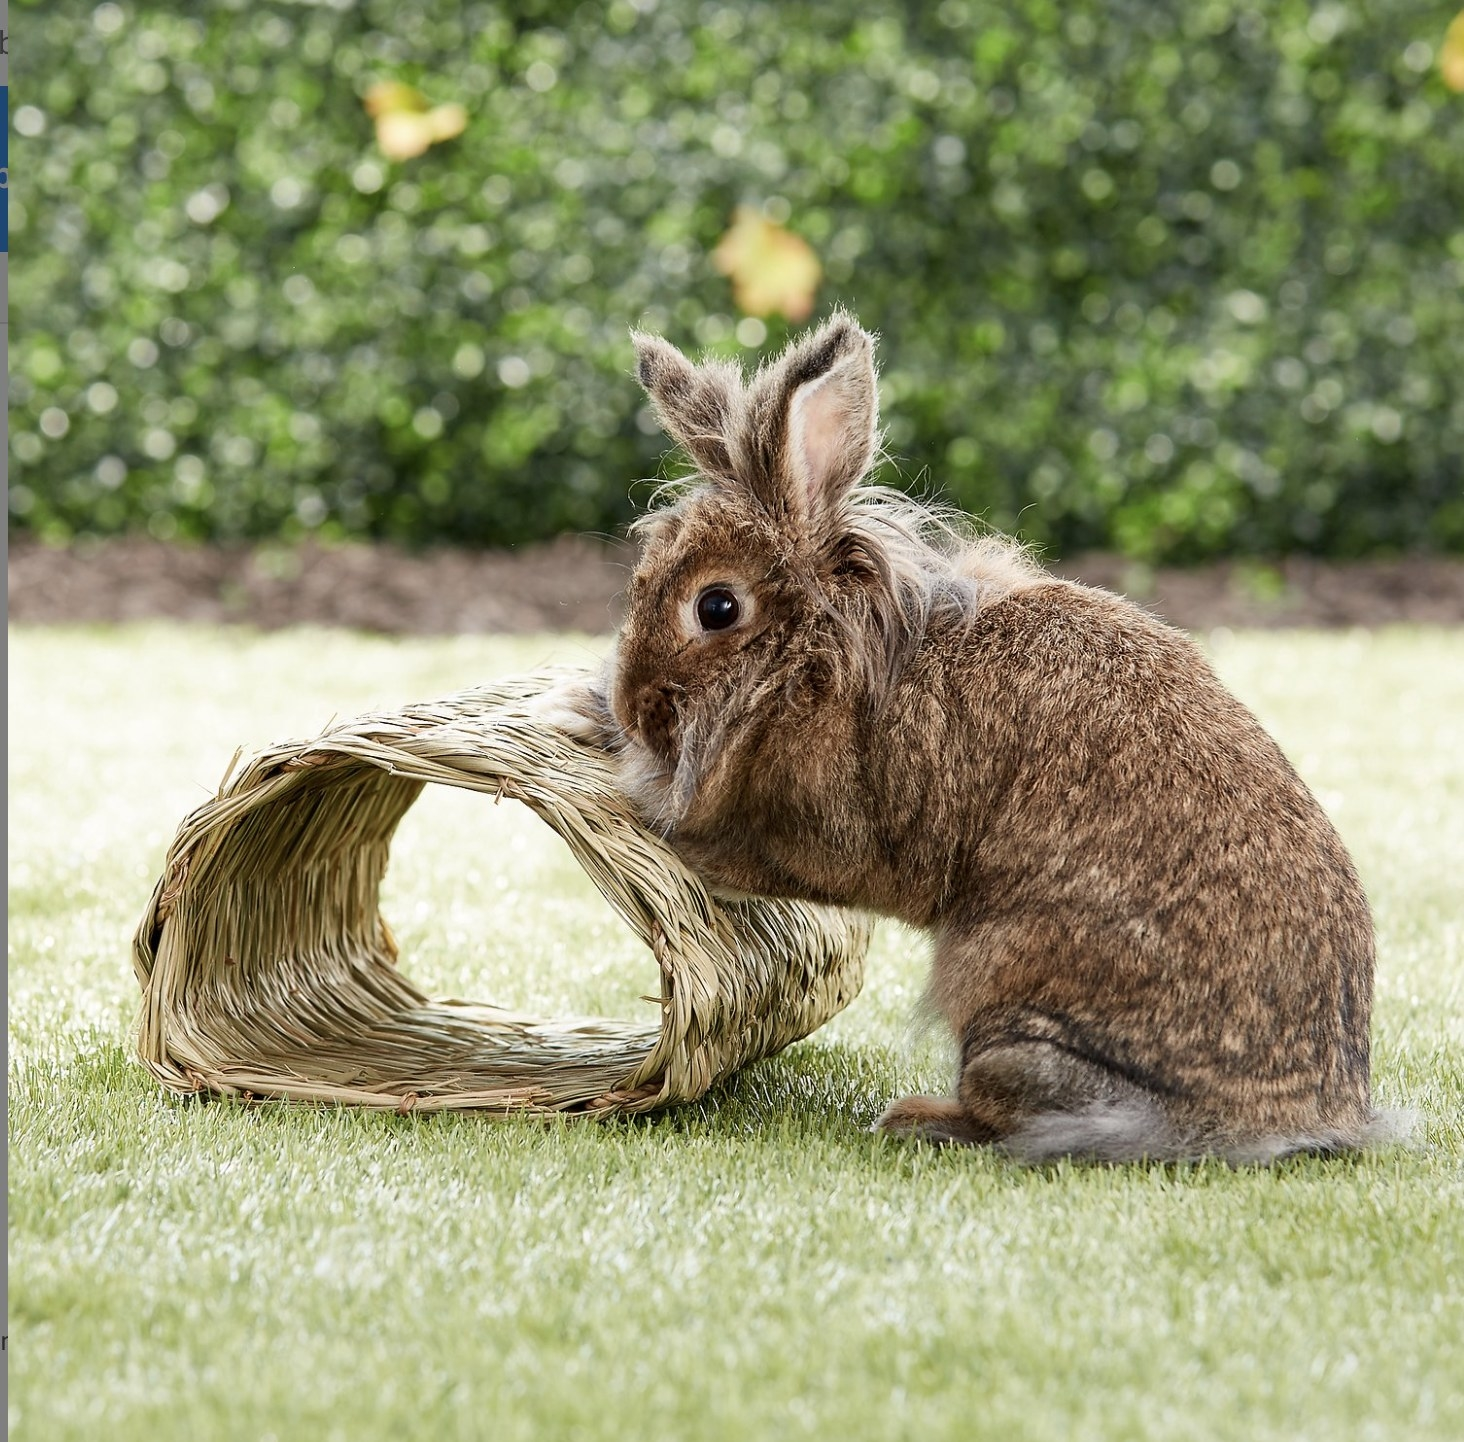 A rabbit playing with a tunnel hideout